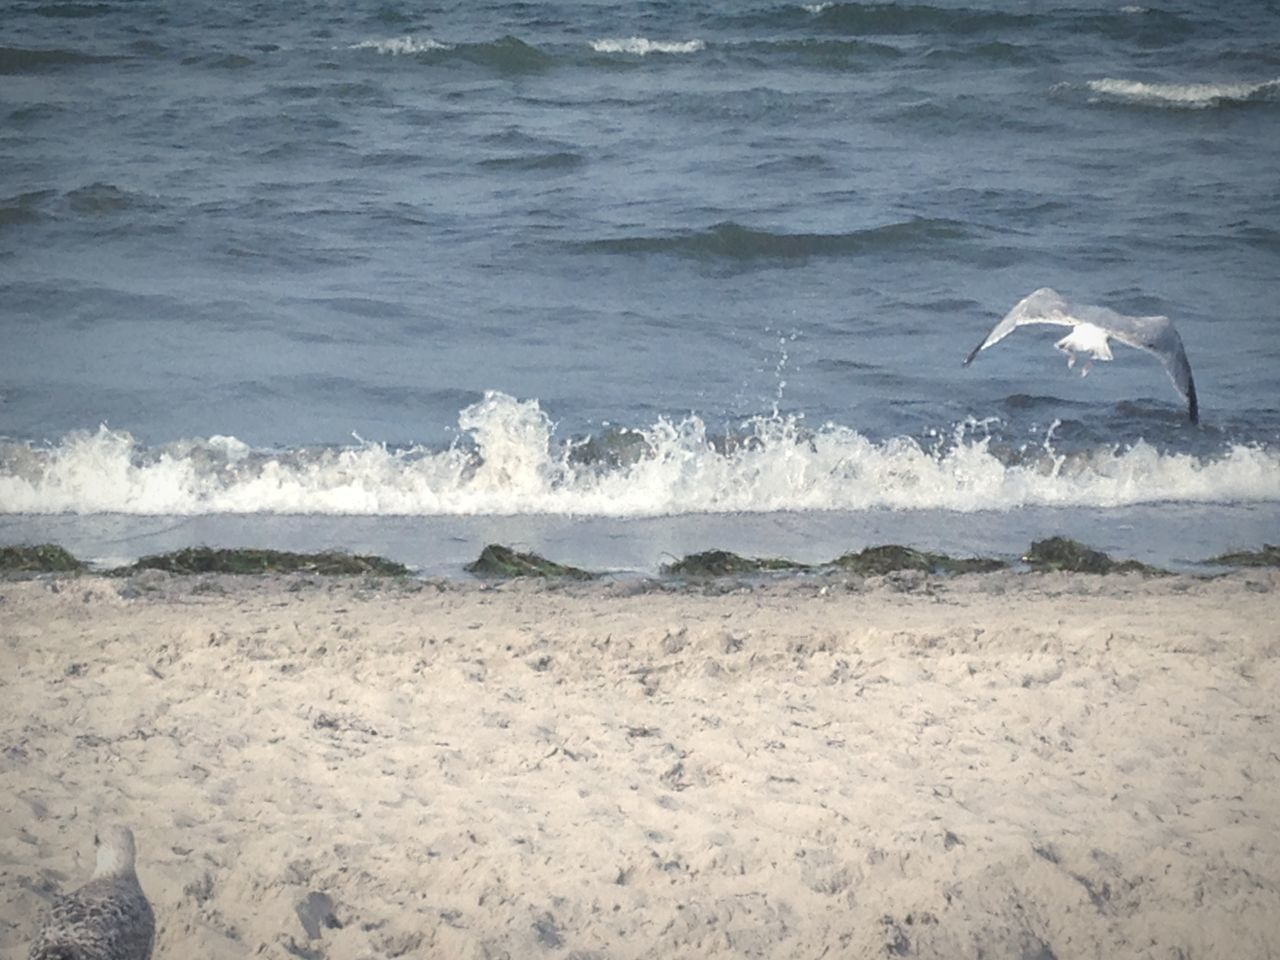 sea, nature, water, beach, bird, wave, motion, sand, day, one animal, animal themes, animals in the wild, beauty in nature, no people, outdoors, spread wings, flying, sky